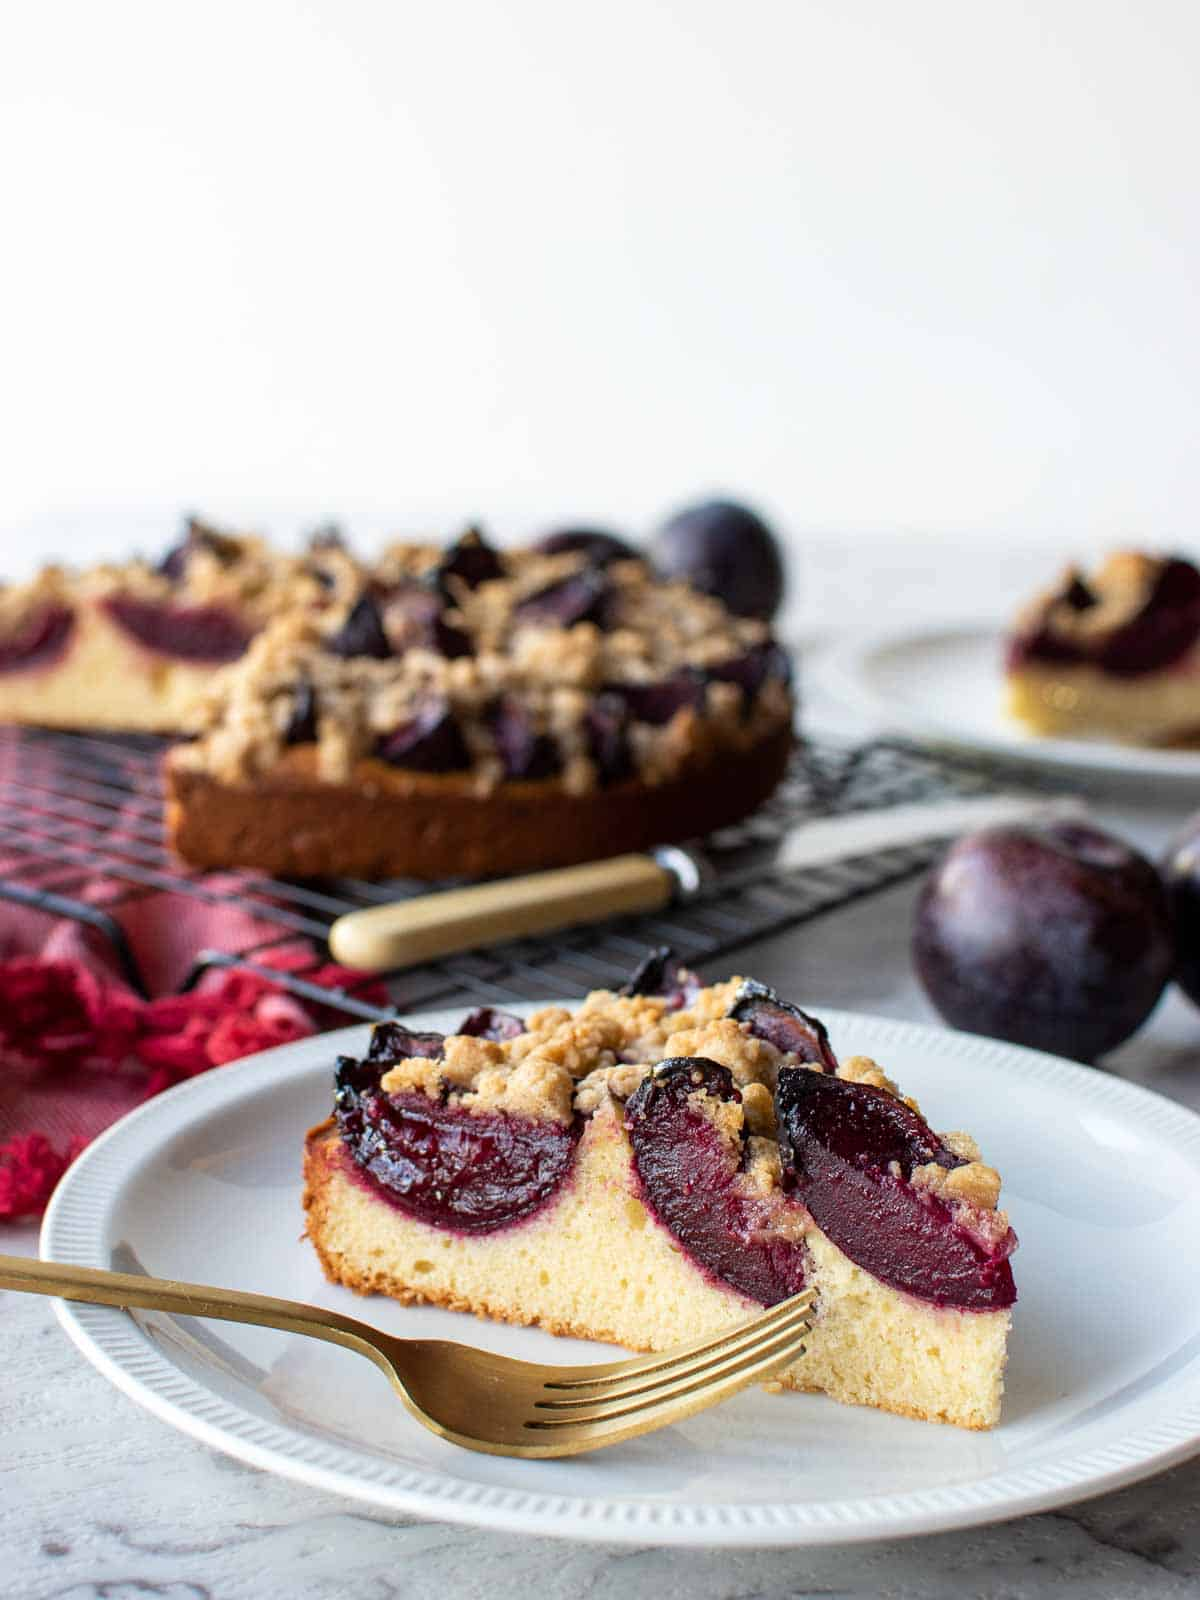 slice of plum cake on white plate with whole cake in the background.